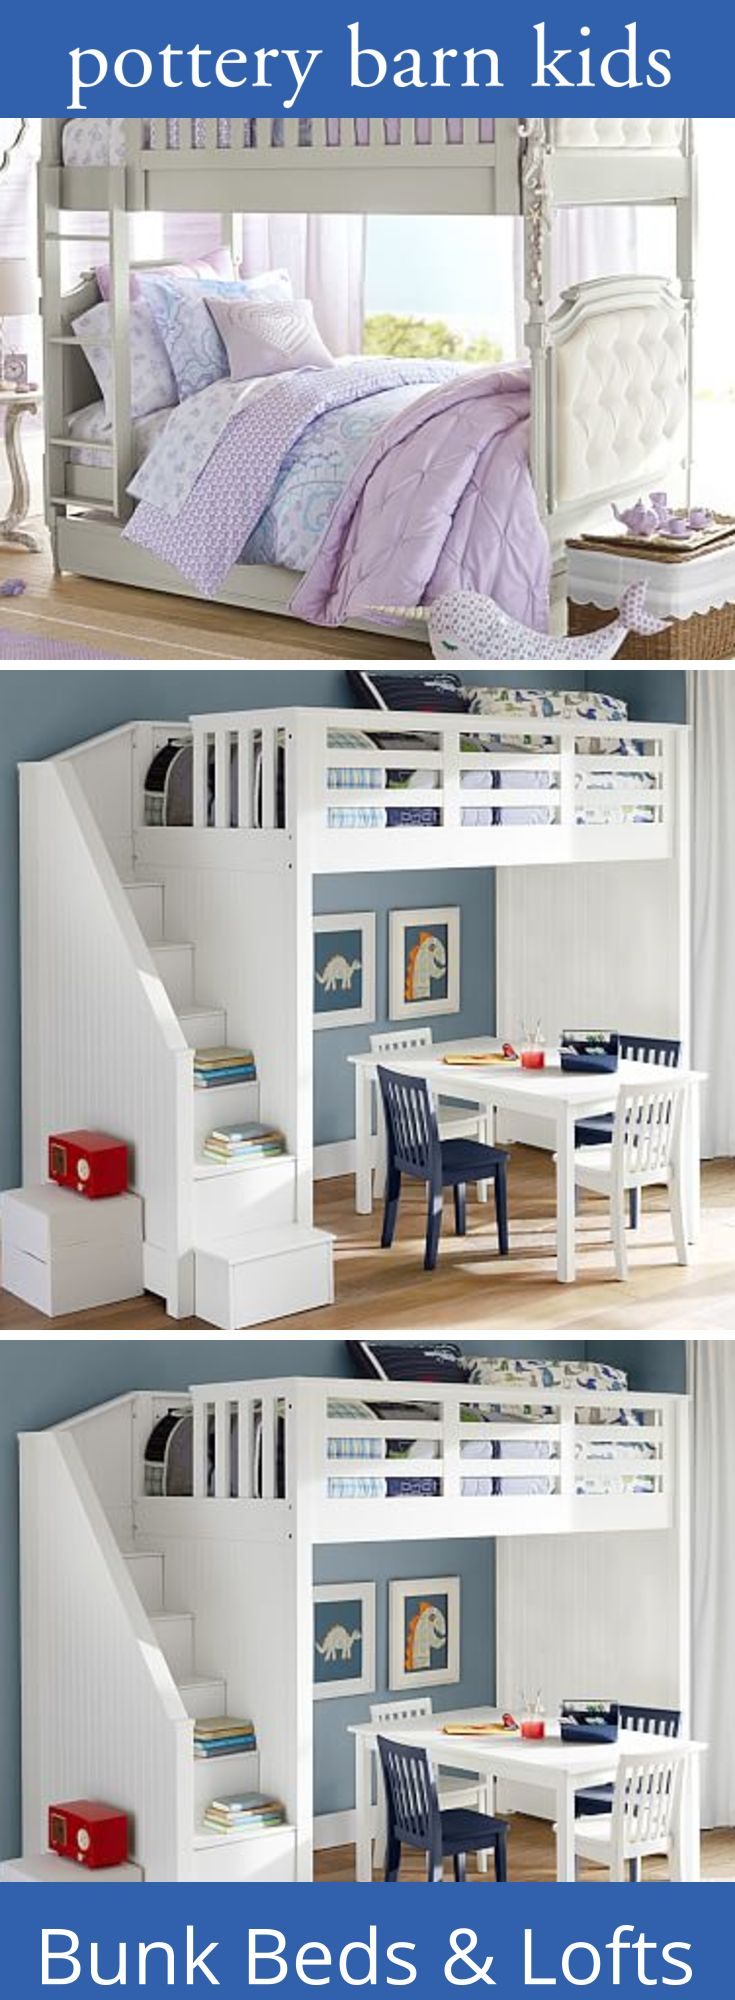 Loft bedroom ideas for boys   images about Baby T needs on Pinterest  Loft beds Pottery